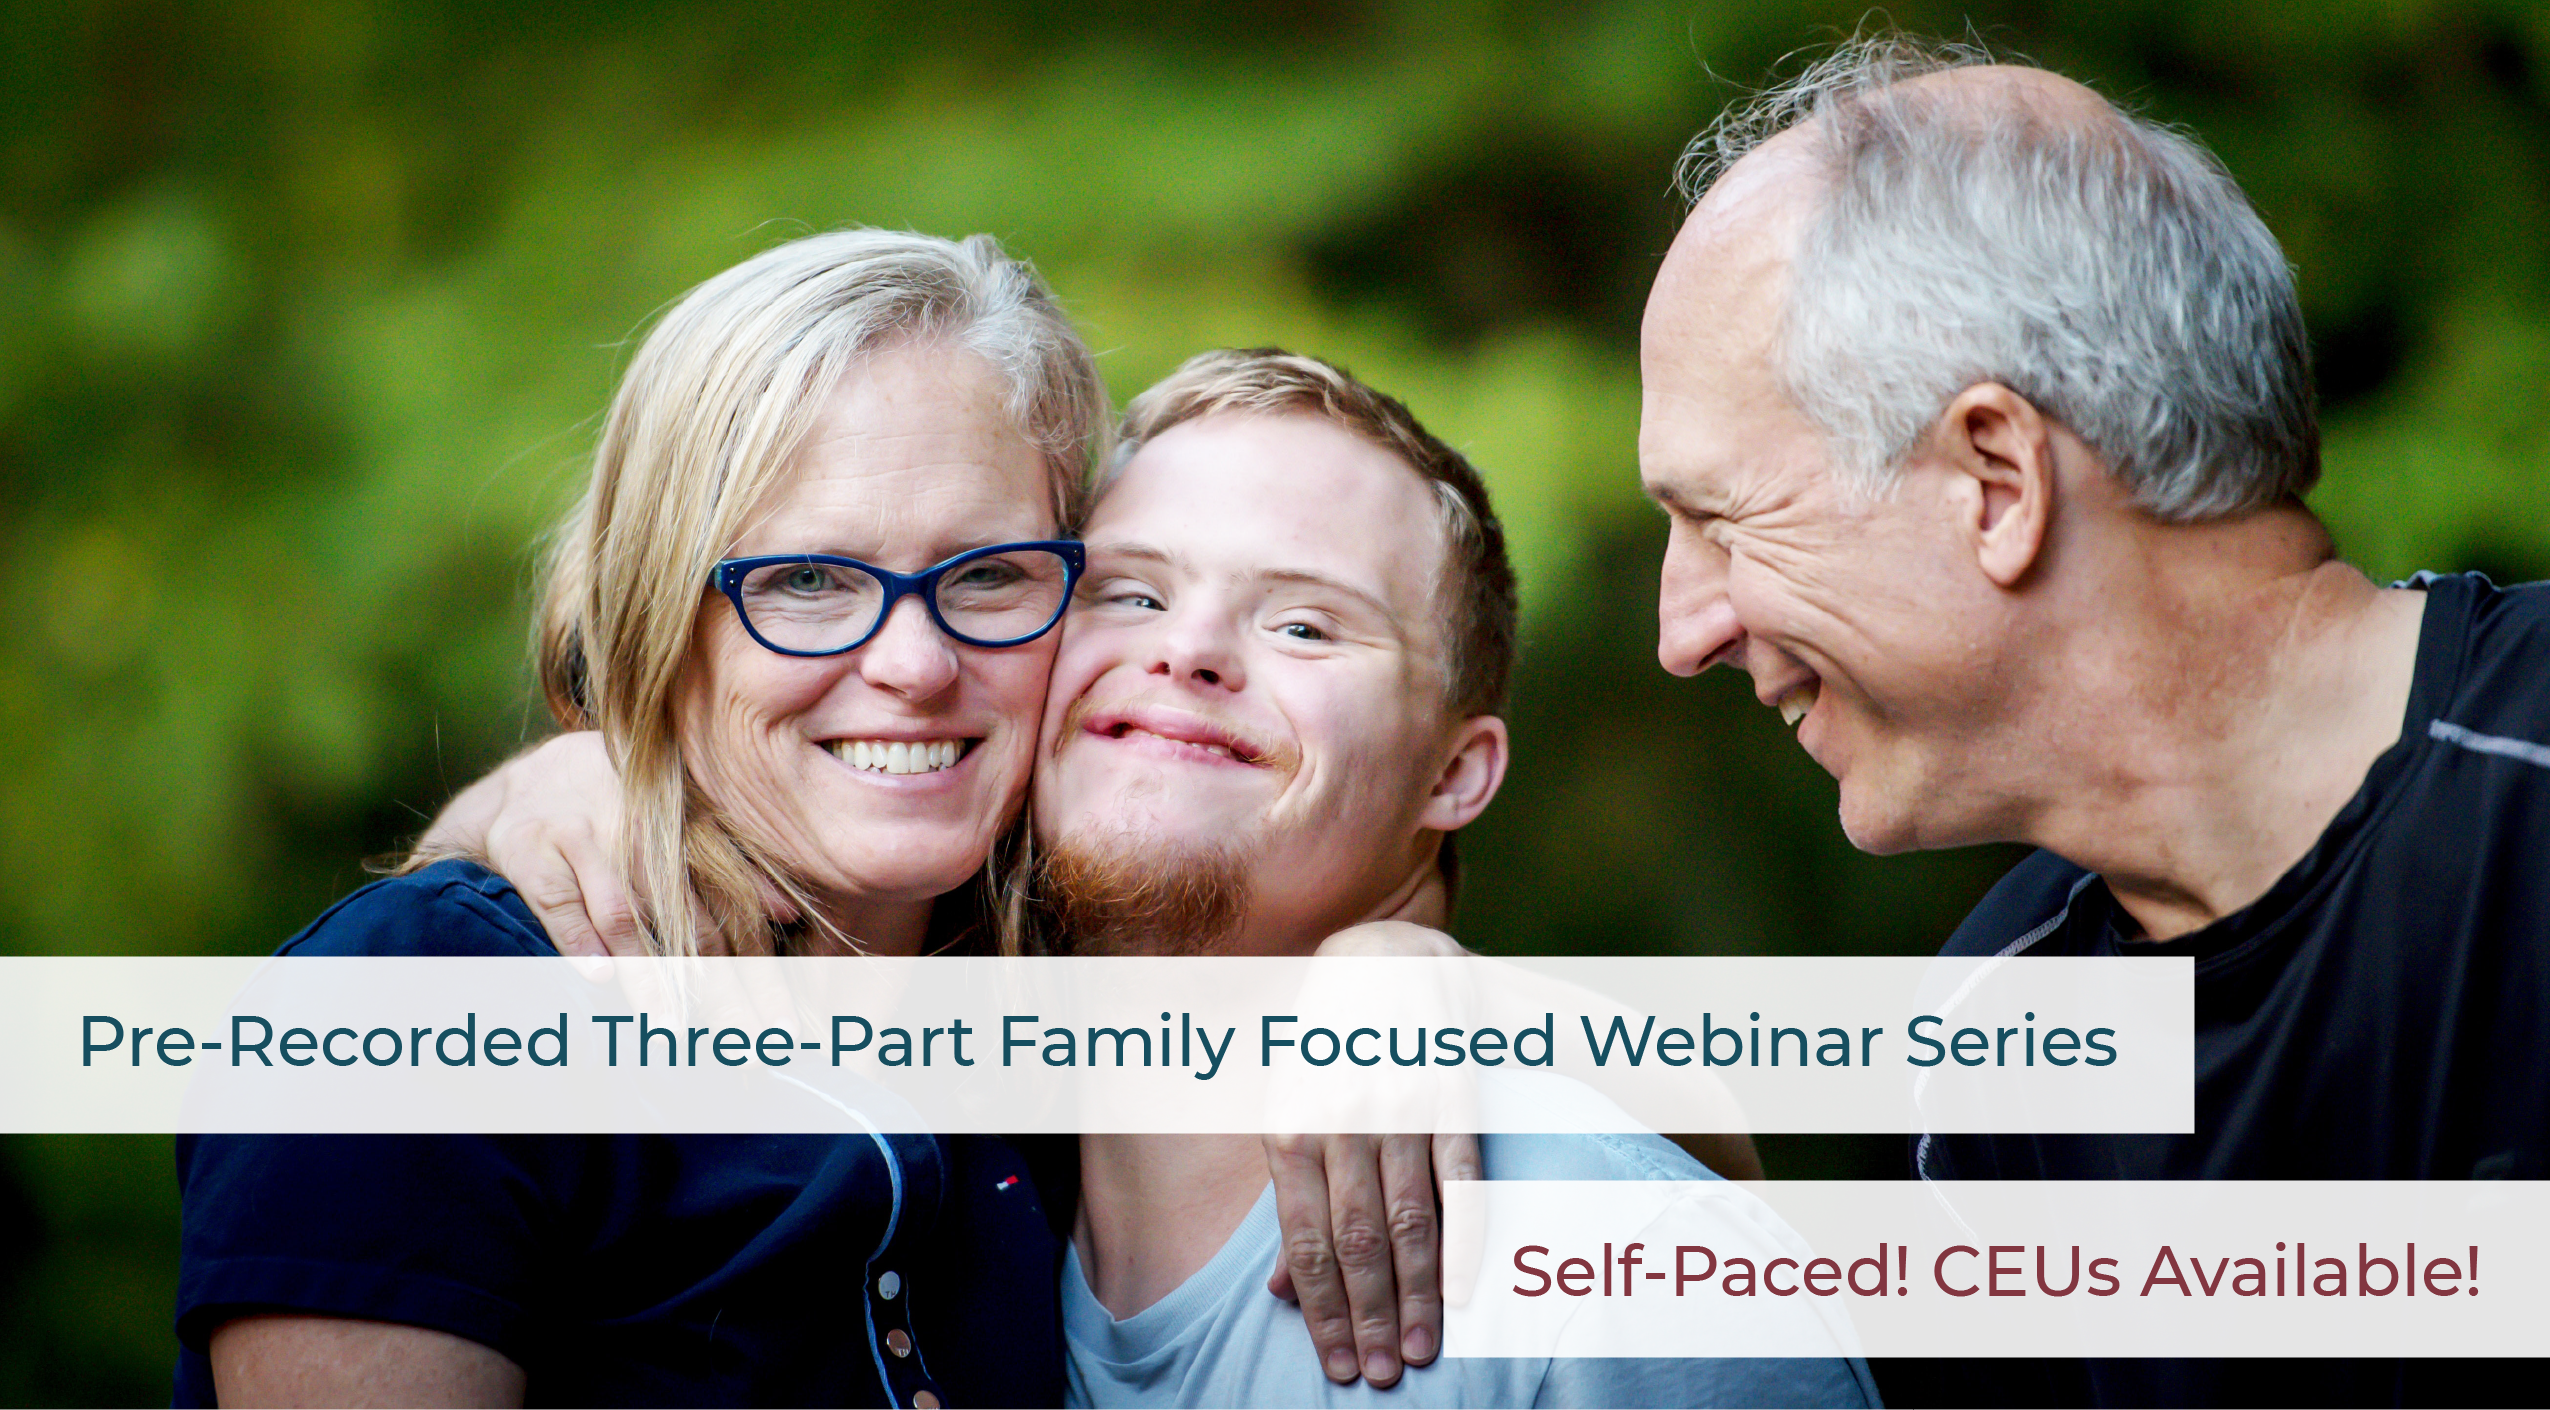 Pre-Recorded Three-Part Family Focused Webinar Series. Self-paced! CEUs available!